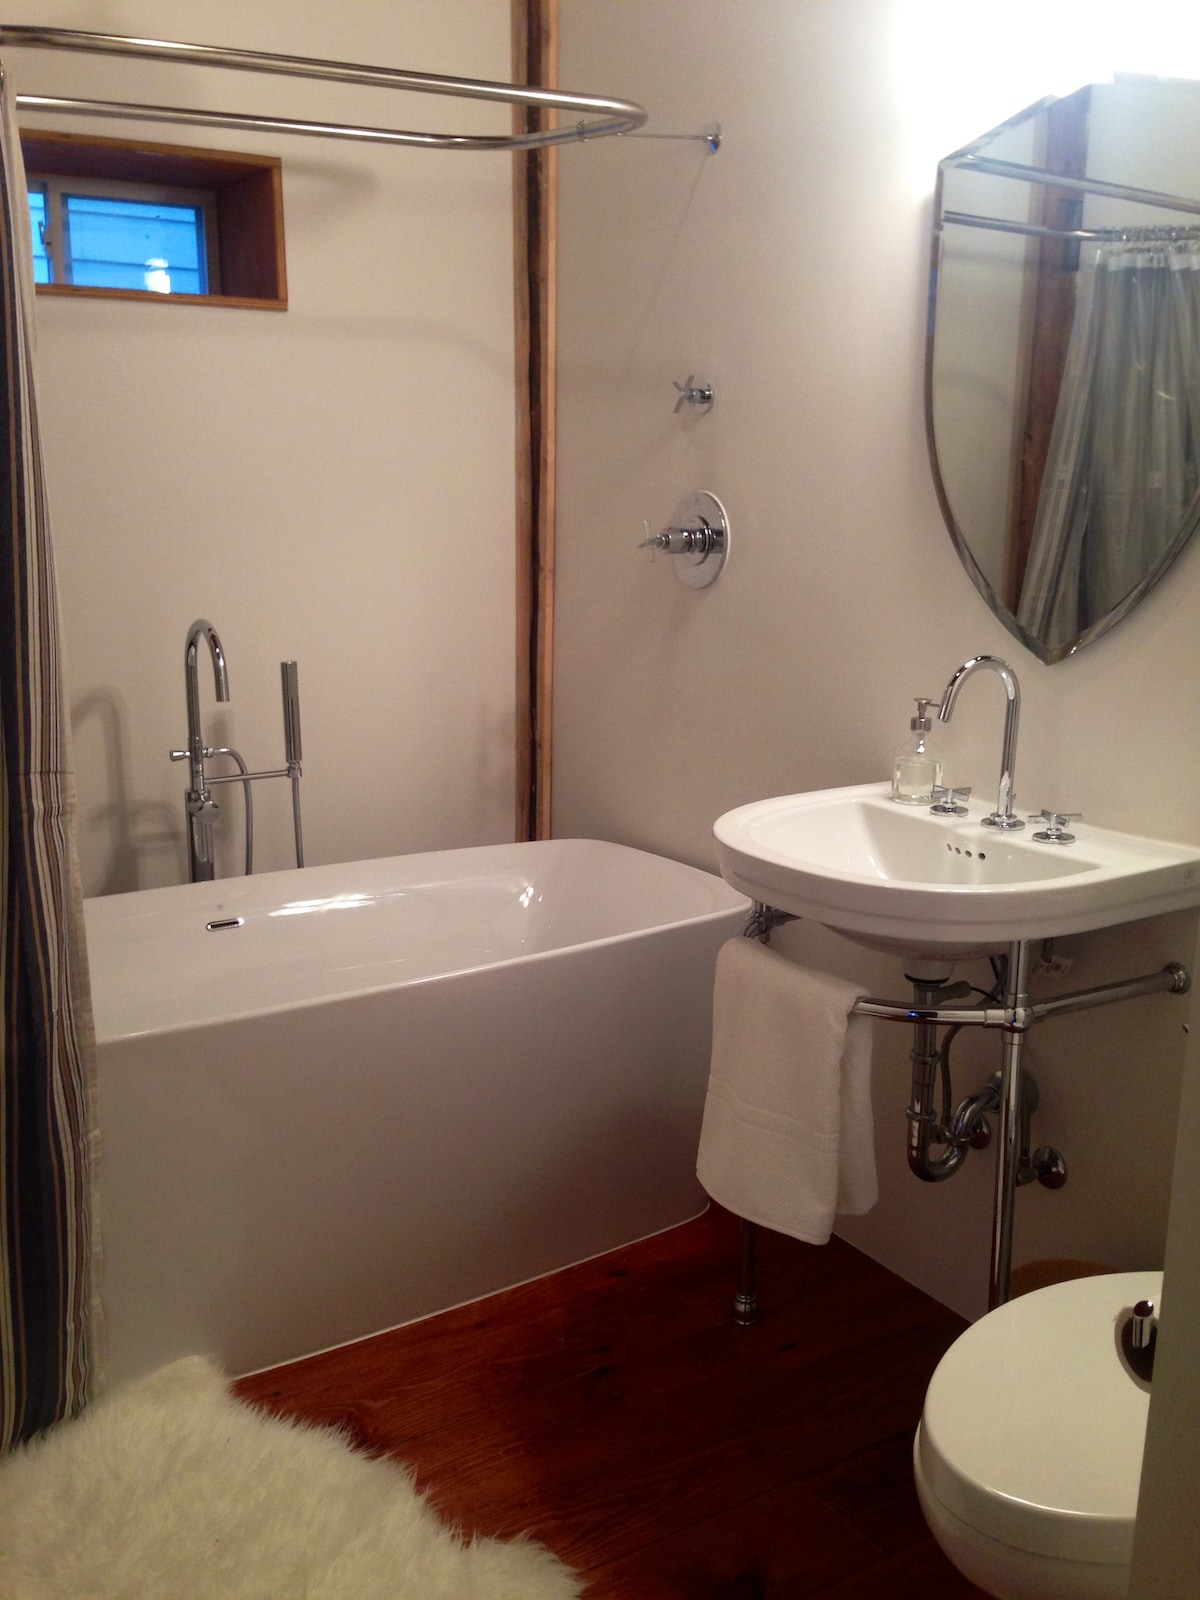 A soaker tub and rain head shower offer you the perfect end to a day of wine tours and beach walks.